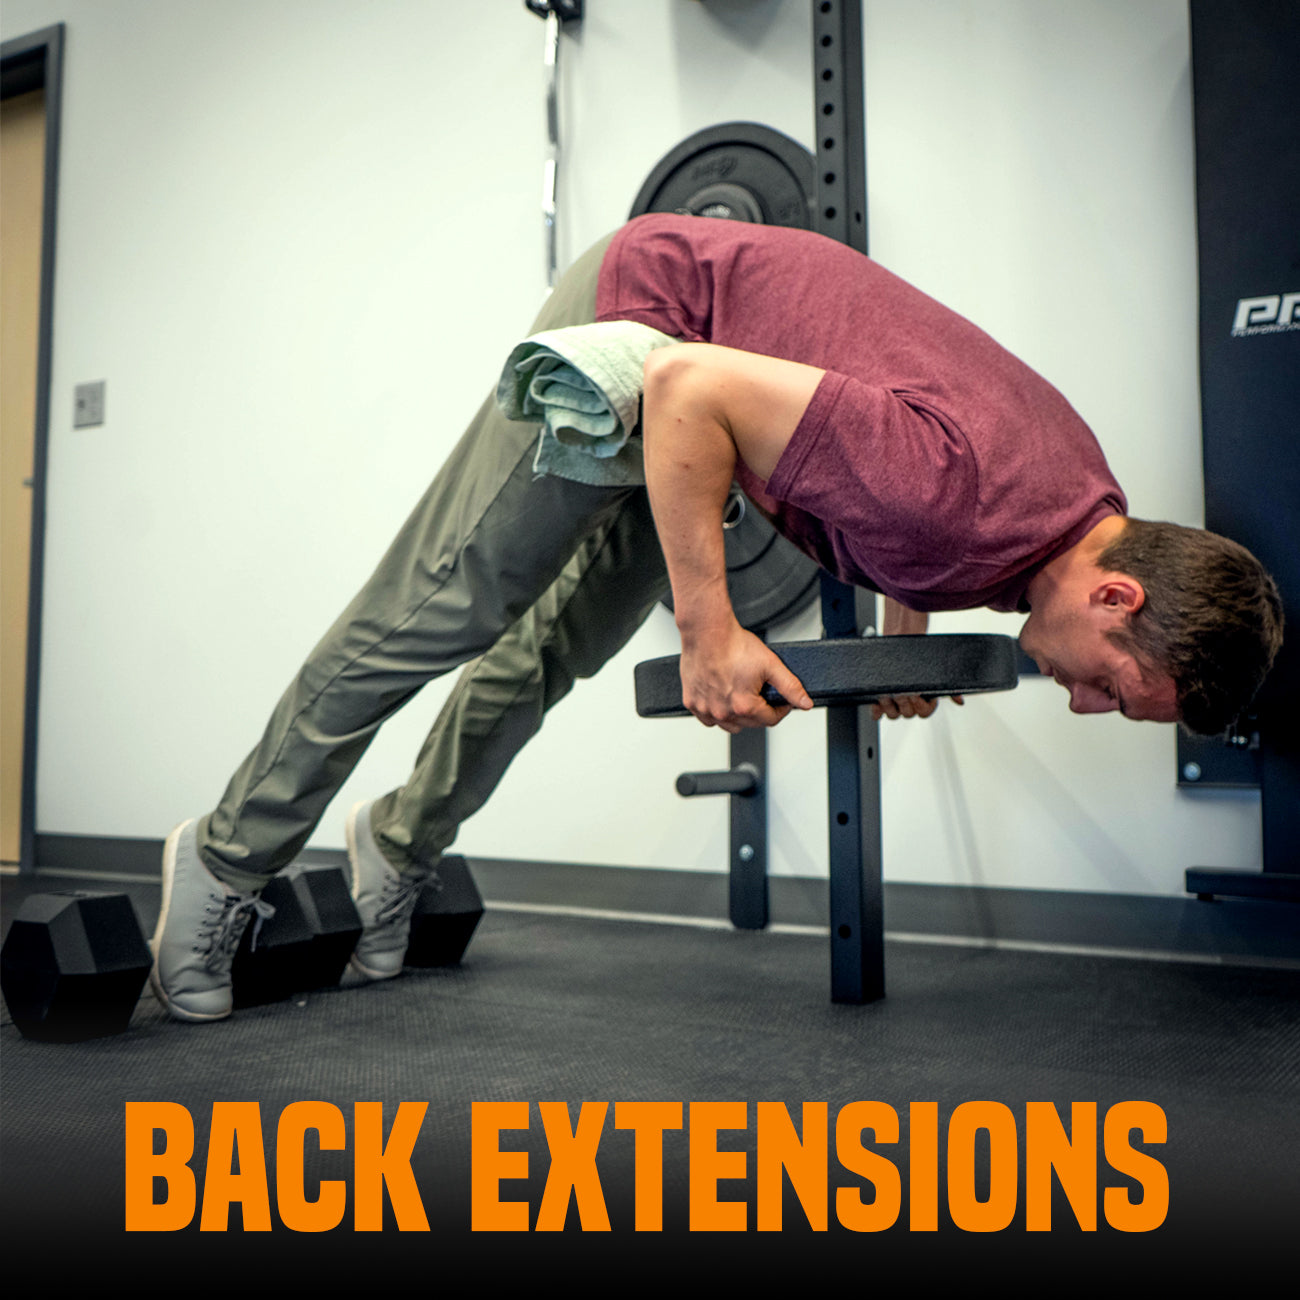 Back Extensions | Home Gym Hacks